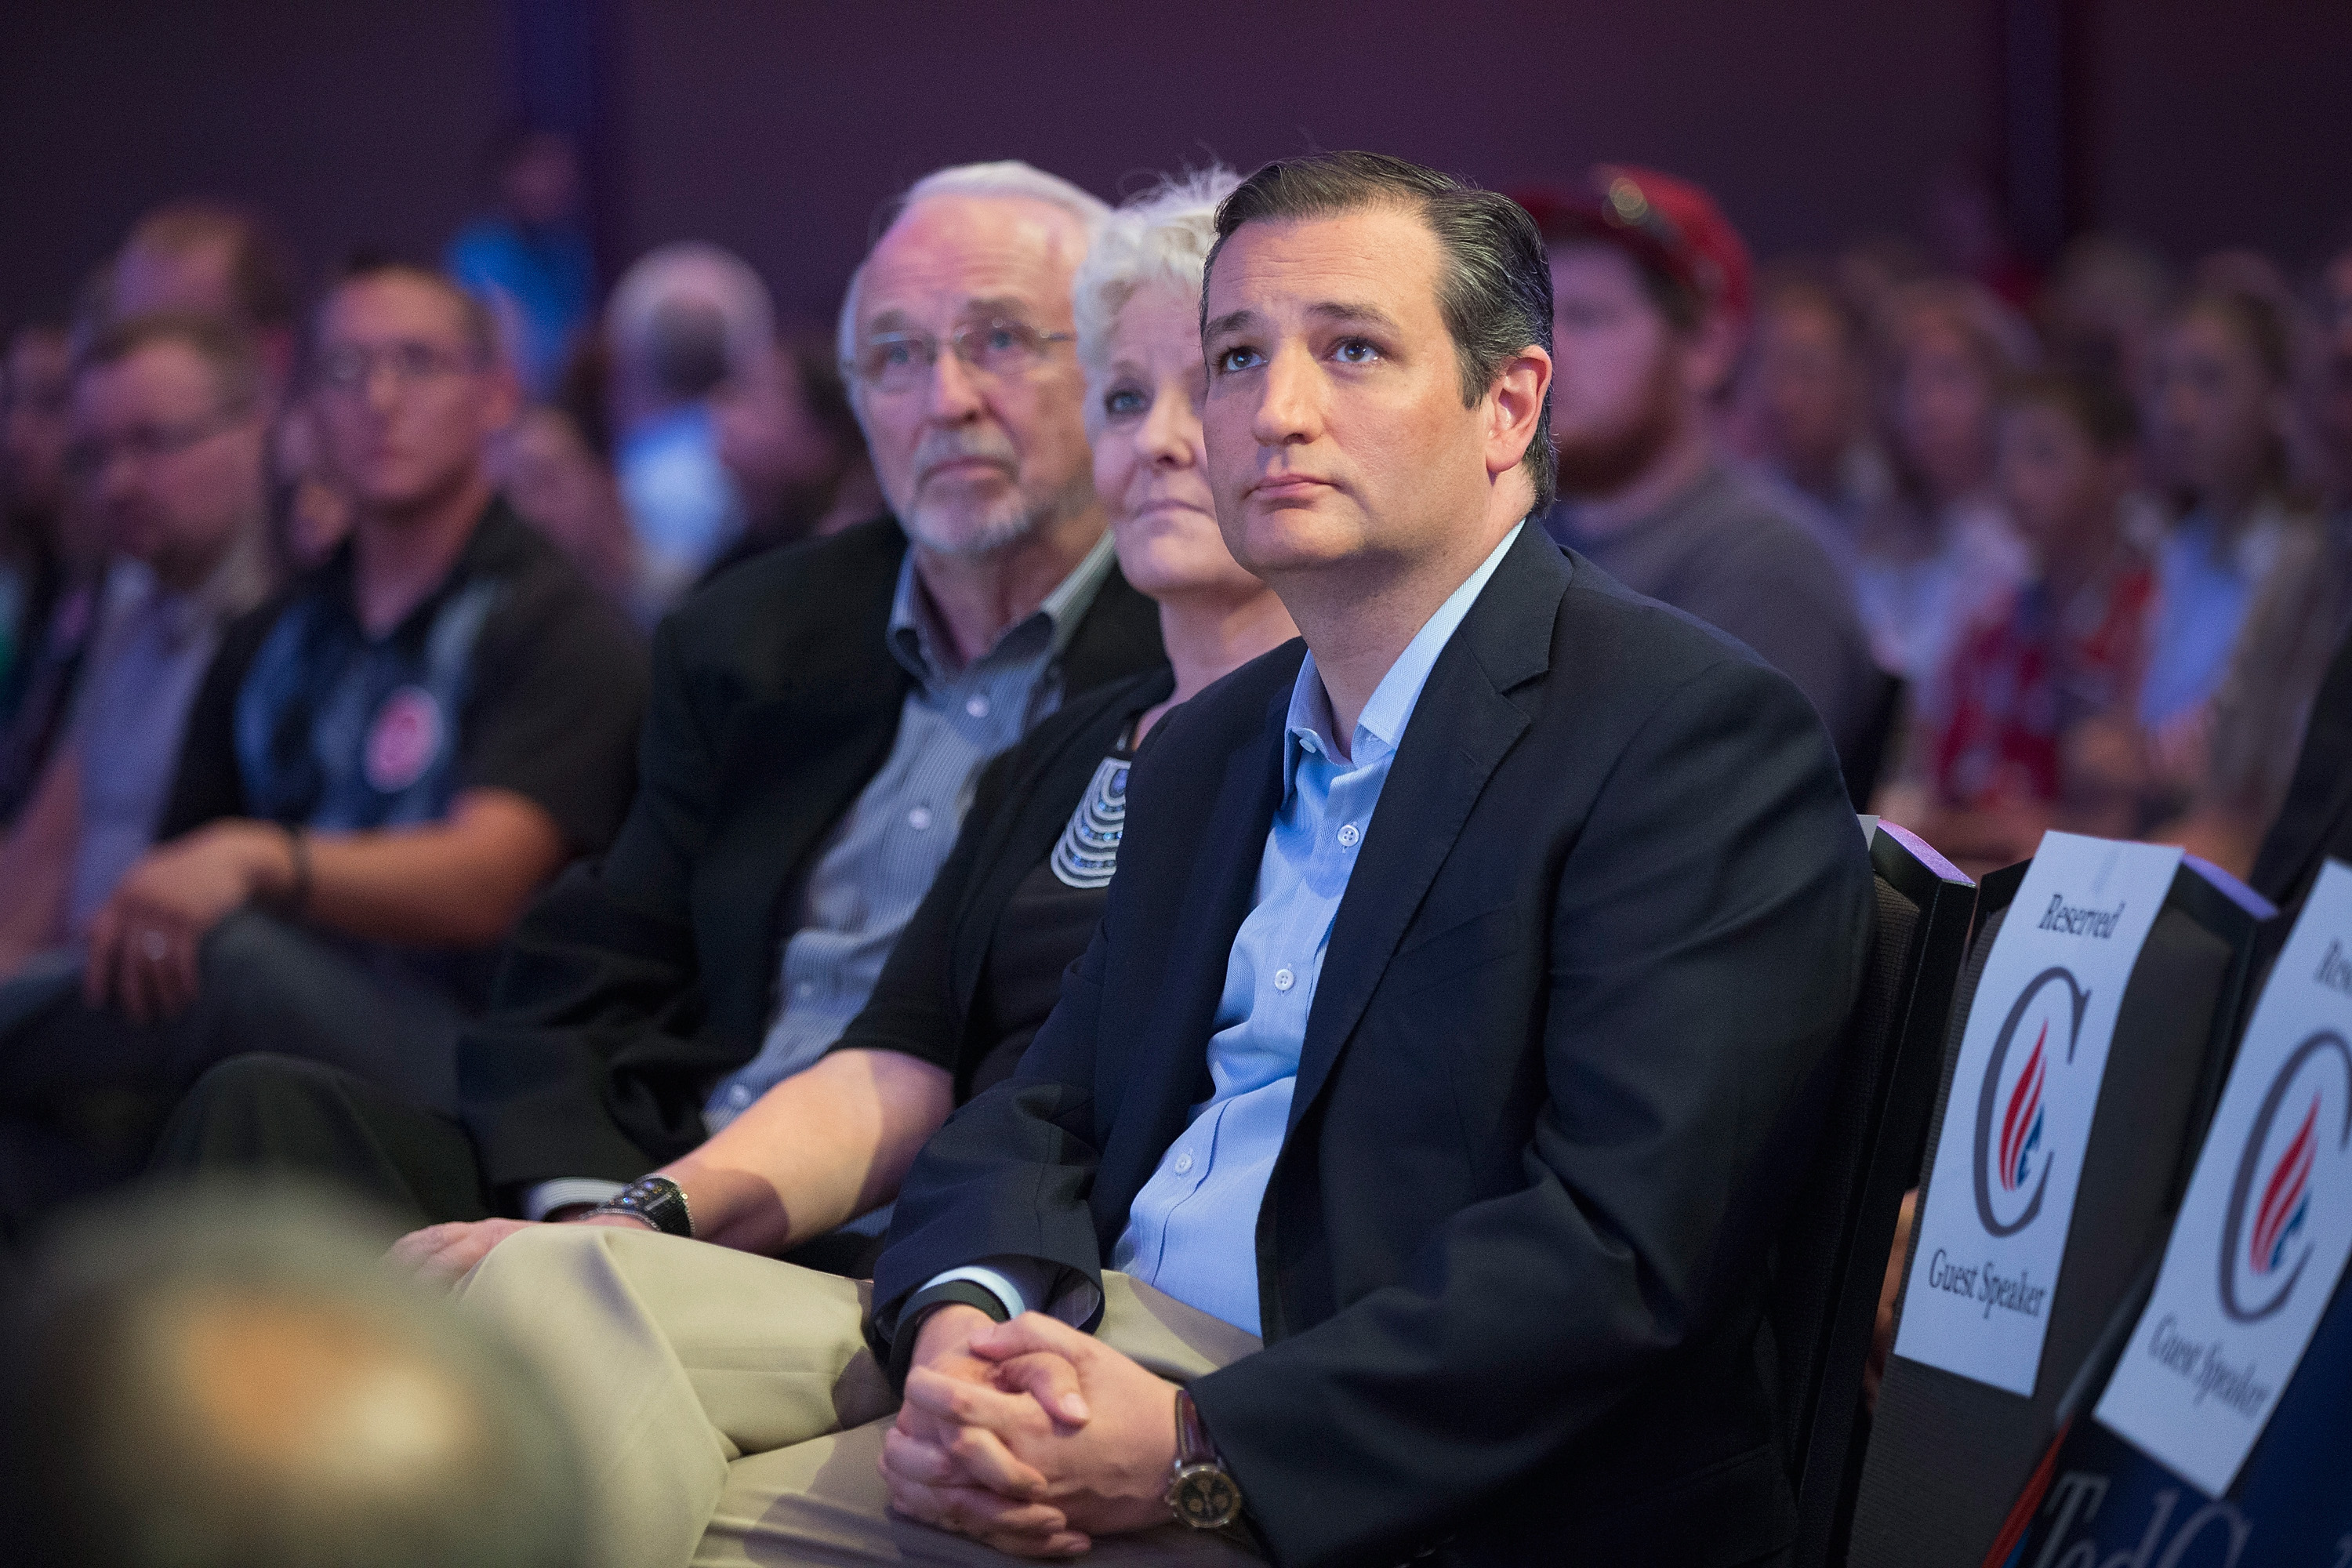 Republican presidential candidate Sen. Ted Cruz waits to be introduced at his Religious Liberty Rally  in Des Moines, Iowa, on Aug. 21, 2015.